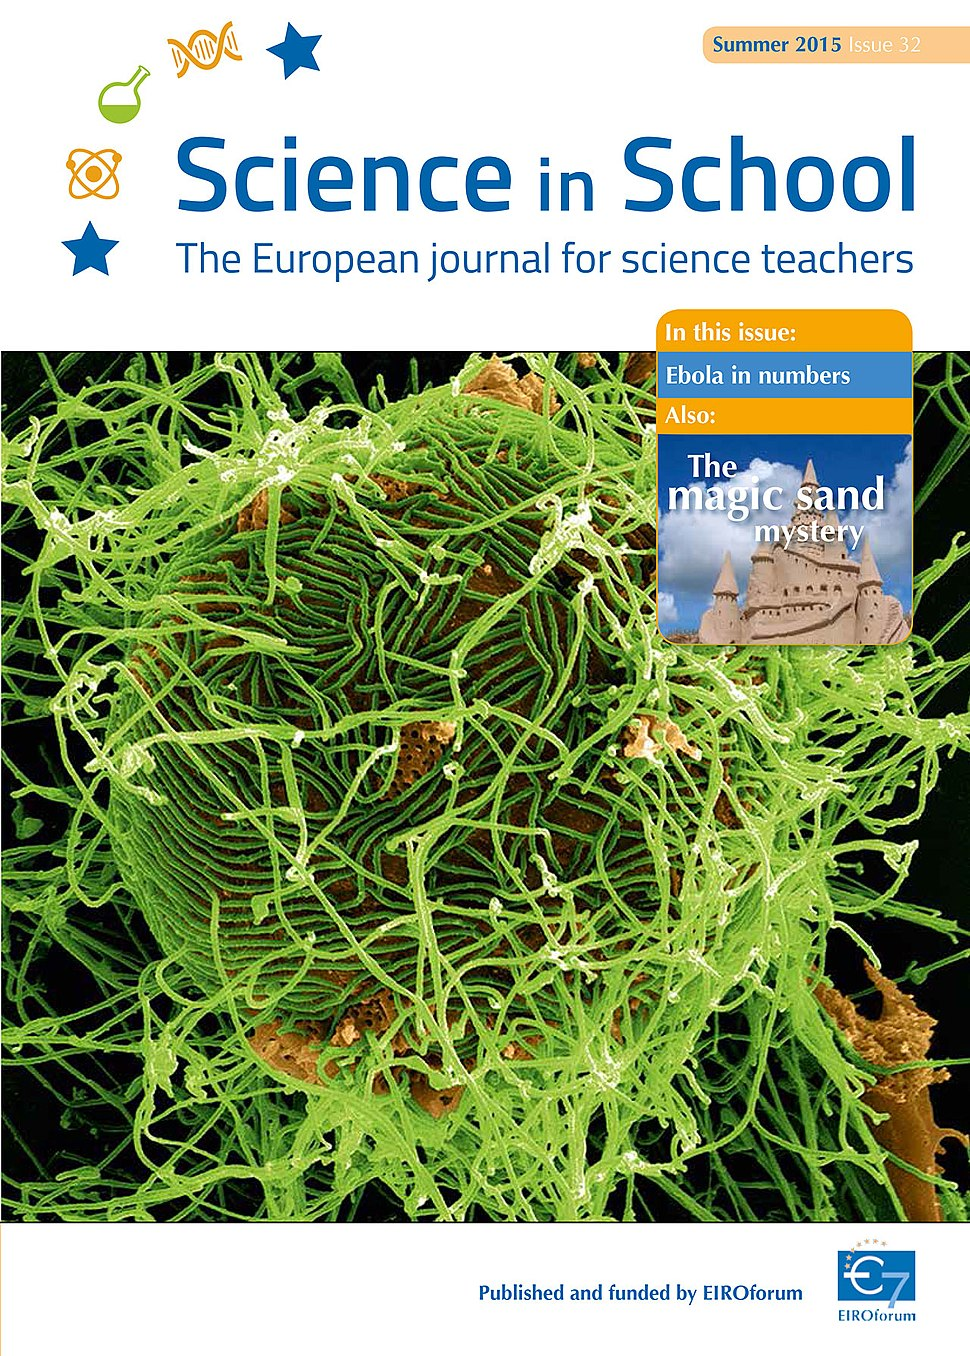 Cover of Science in School 32